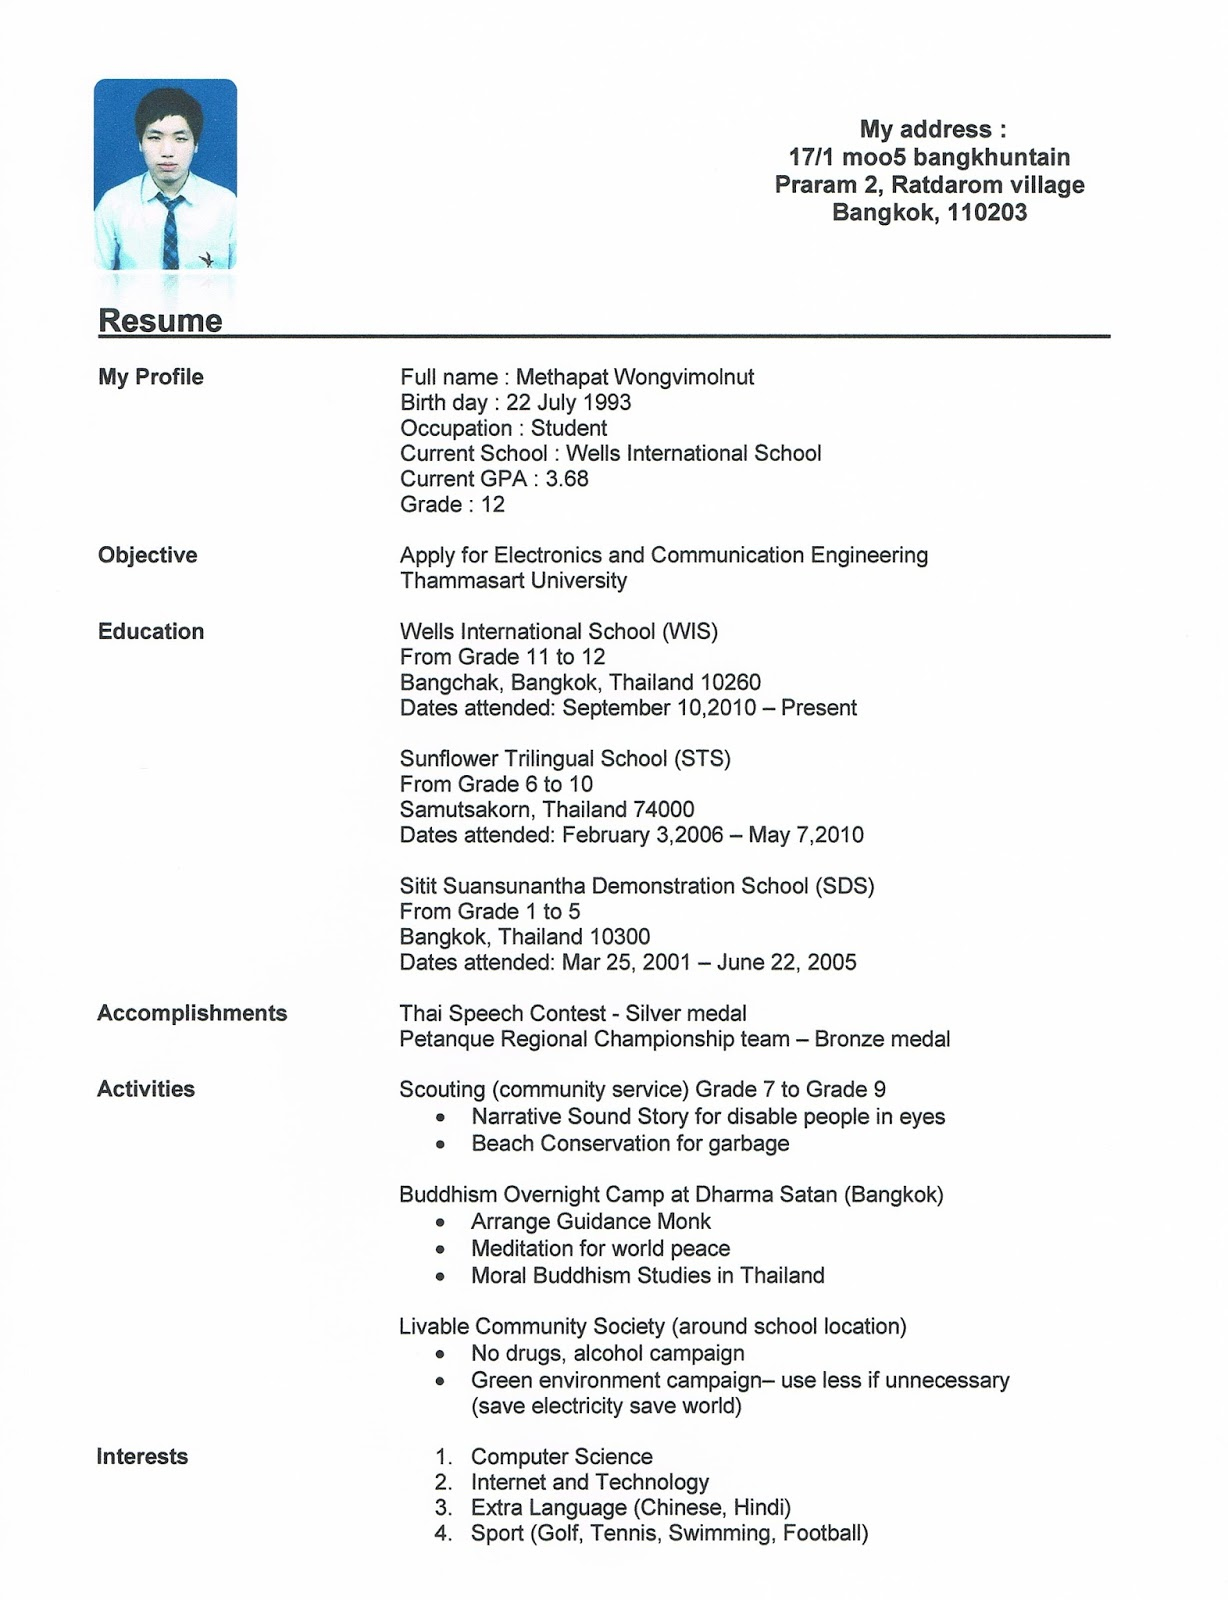 resume example for students in college - Job Resume Examples For College Students